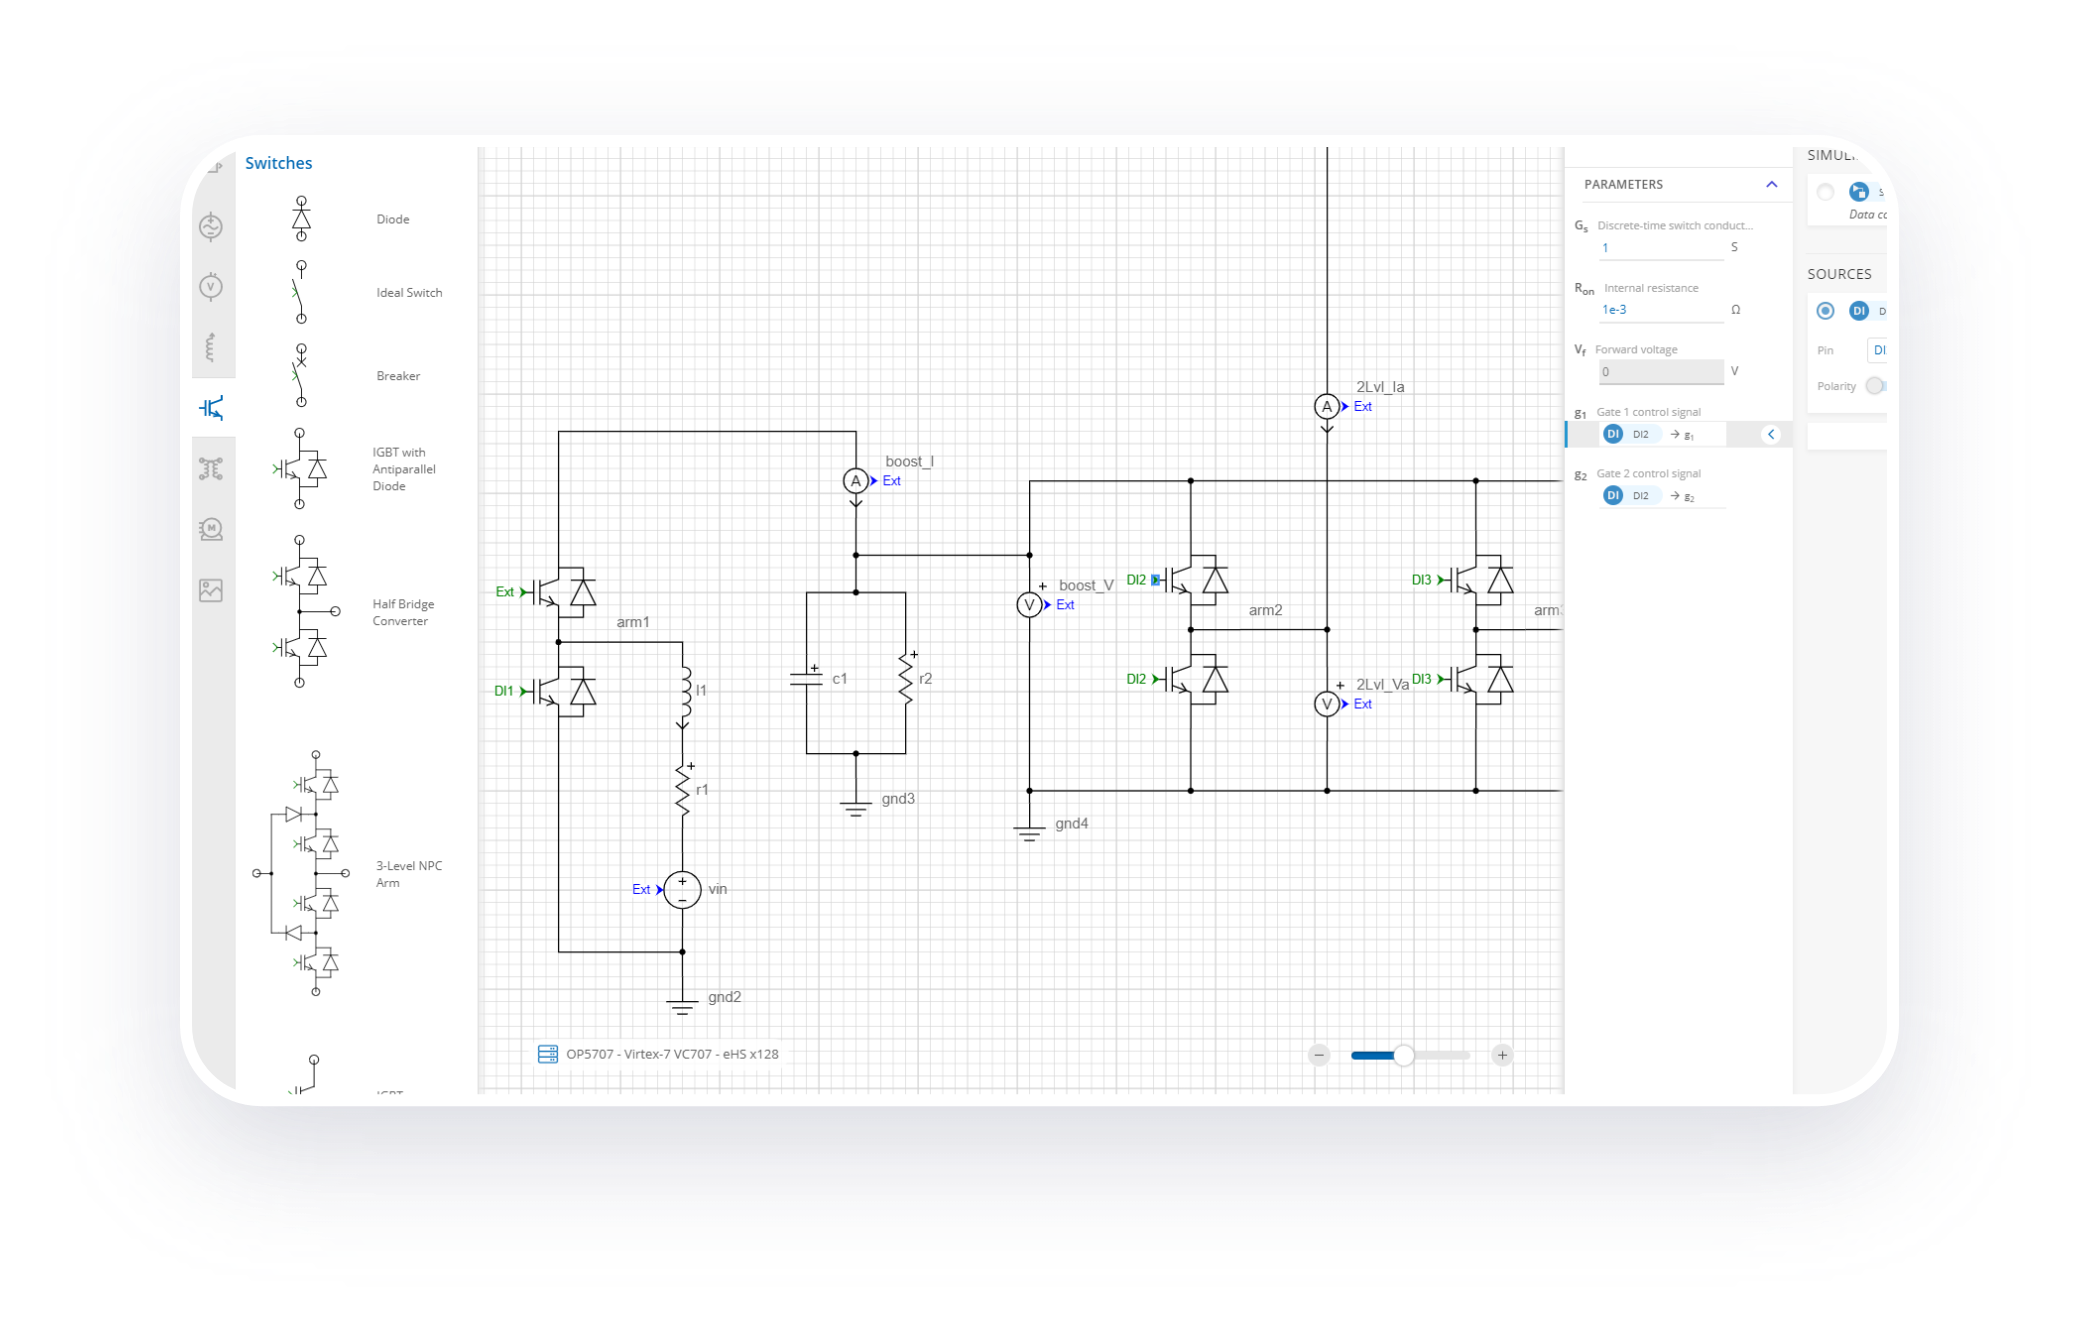 OPAL-RT Schematic Editor